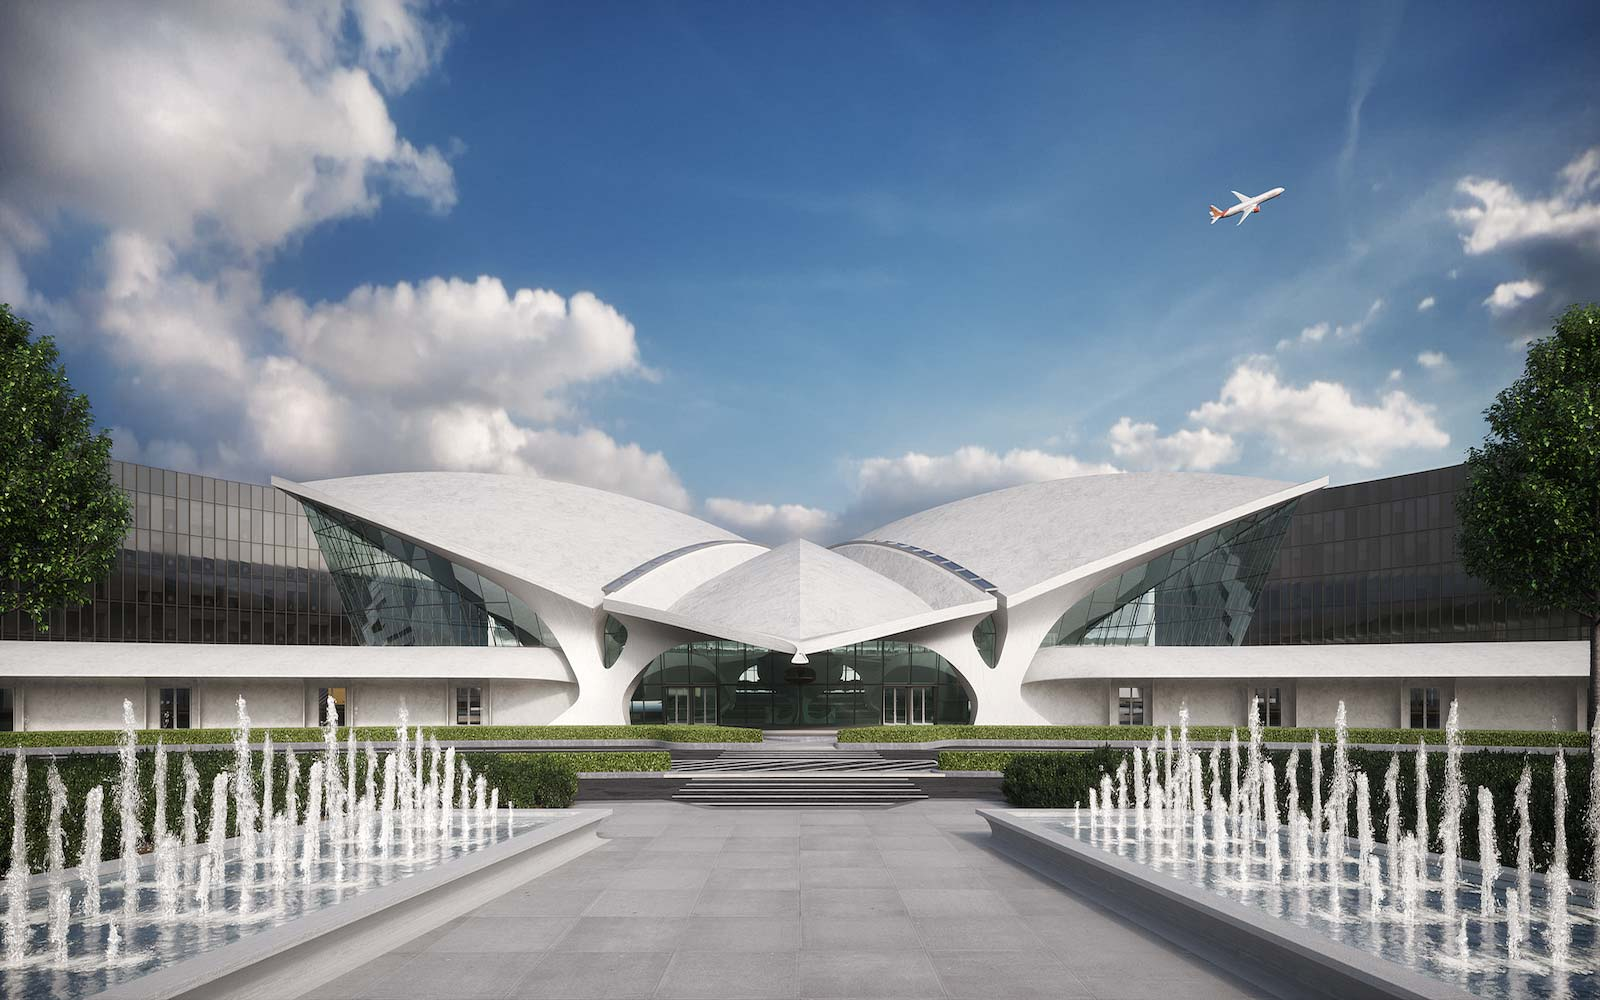 Get a First Look at the Designs for the New TWA Hotel at JFK Airport